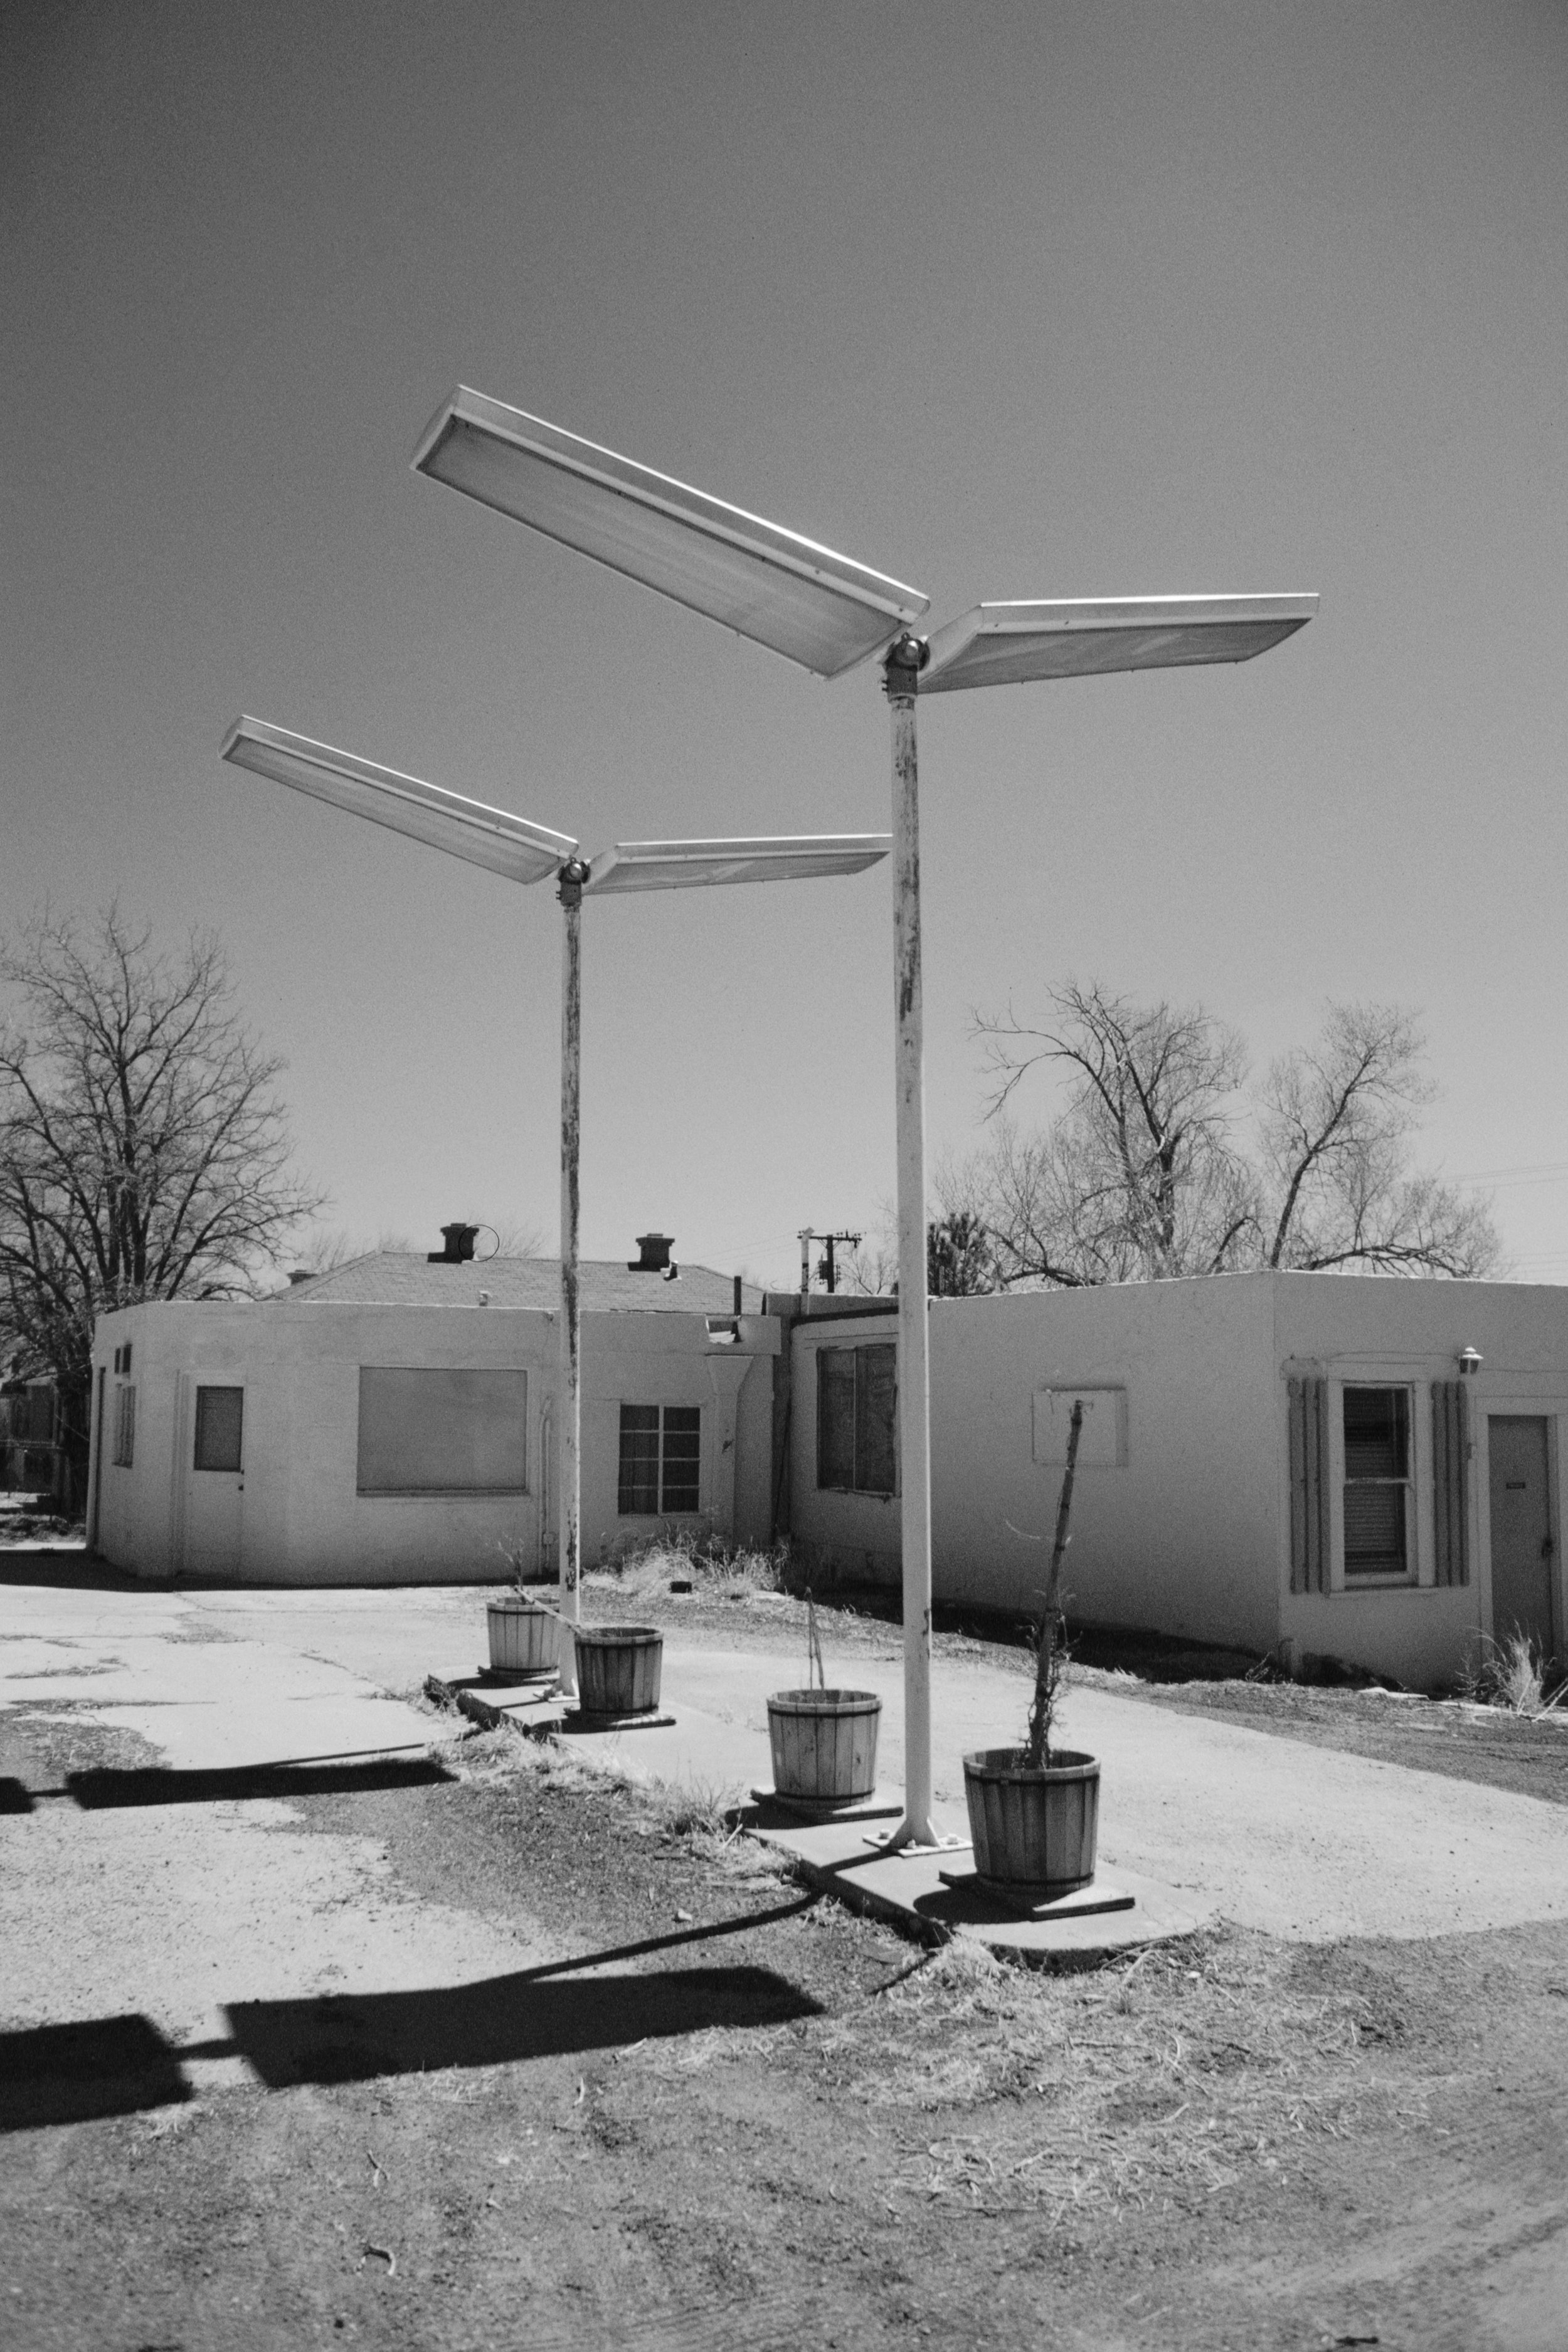 The old service station lights, Seligman, AZ, 2008/9 - 35mm